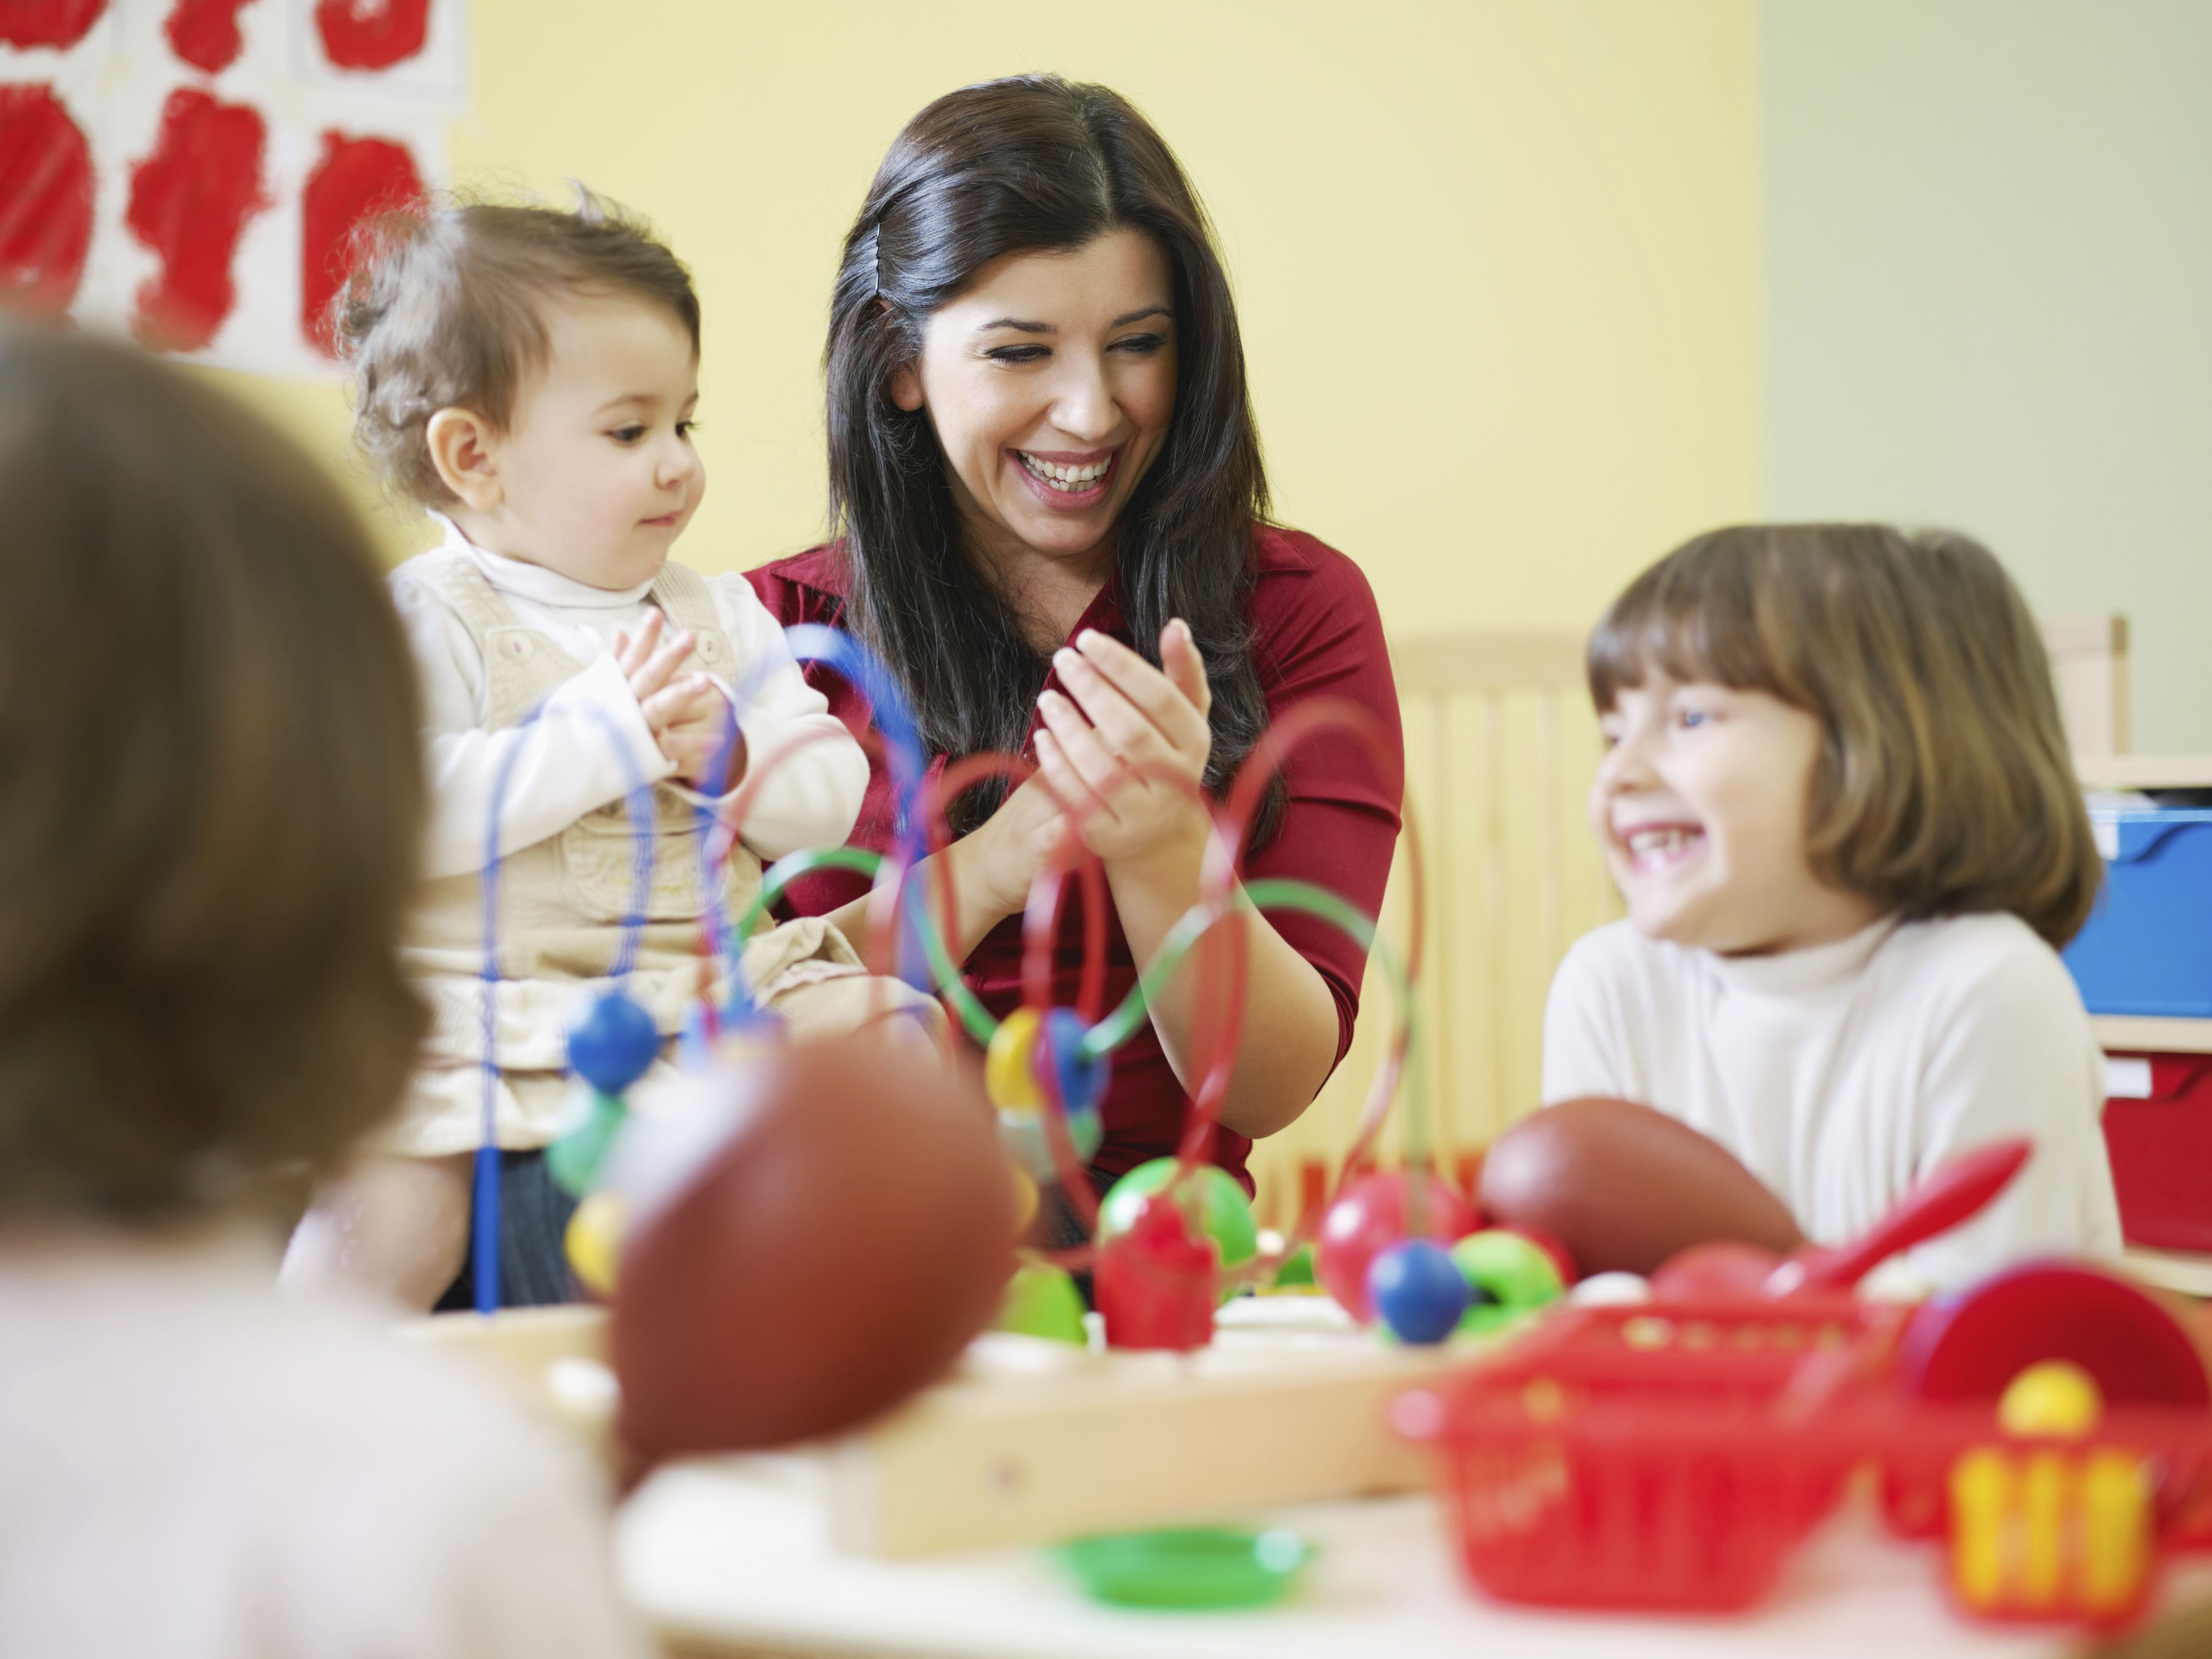 Degree Requirements For Child Care Workers May Improve Industry But Raise Concerns For L Activities For Autistic Children Autistic Children Starting A Daycare